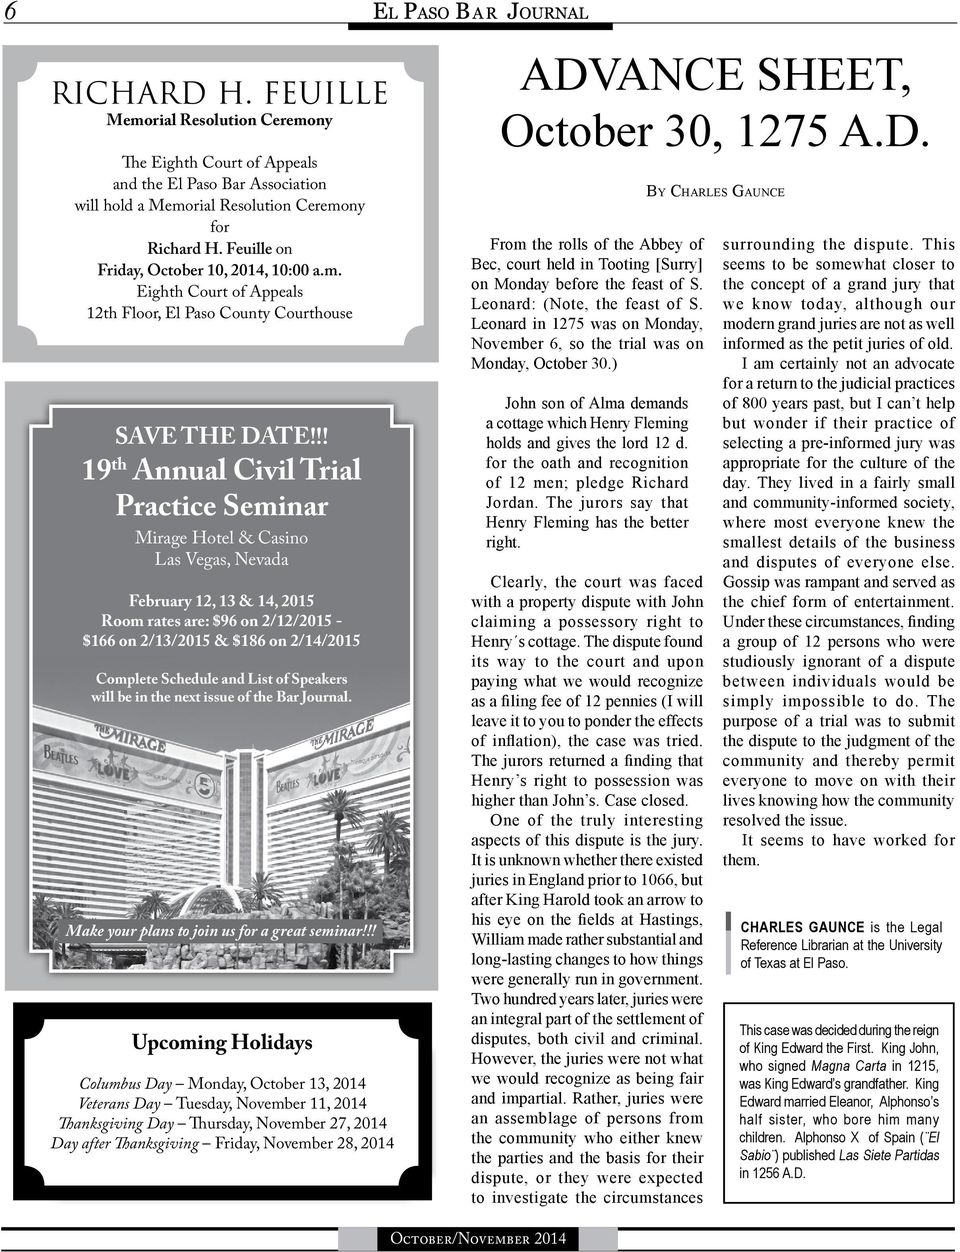 !! 19 th Annual Civil Trial Practice Seminar Mirage Hotel & Casino Las Vegas, Nevada February 12, 13 & 14, 2015 Room rates are: $96 on 2/12/2015 - $166 on 2/13/2015 & $186 on 2/14/2015 Complete